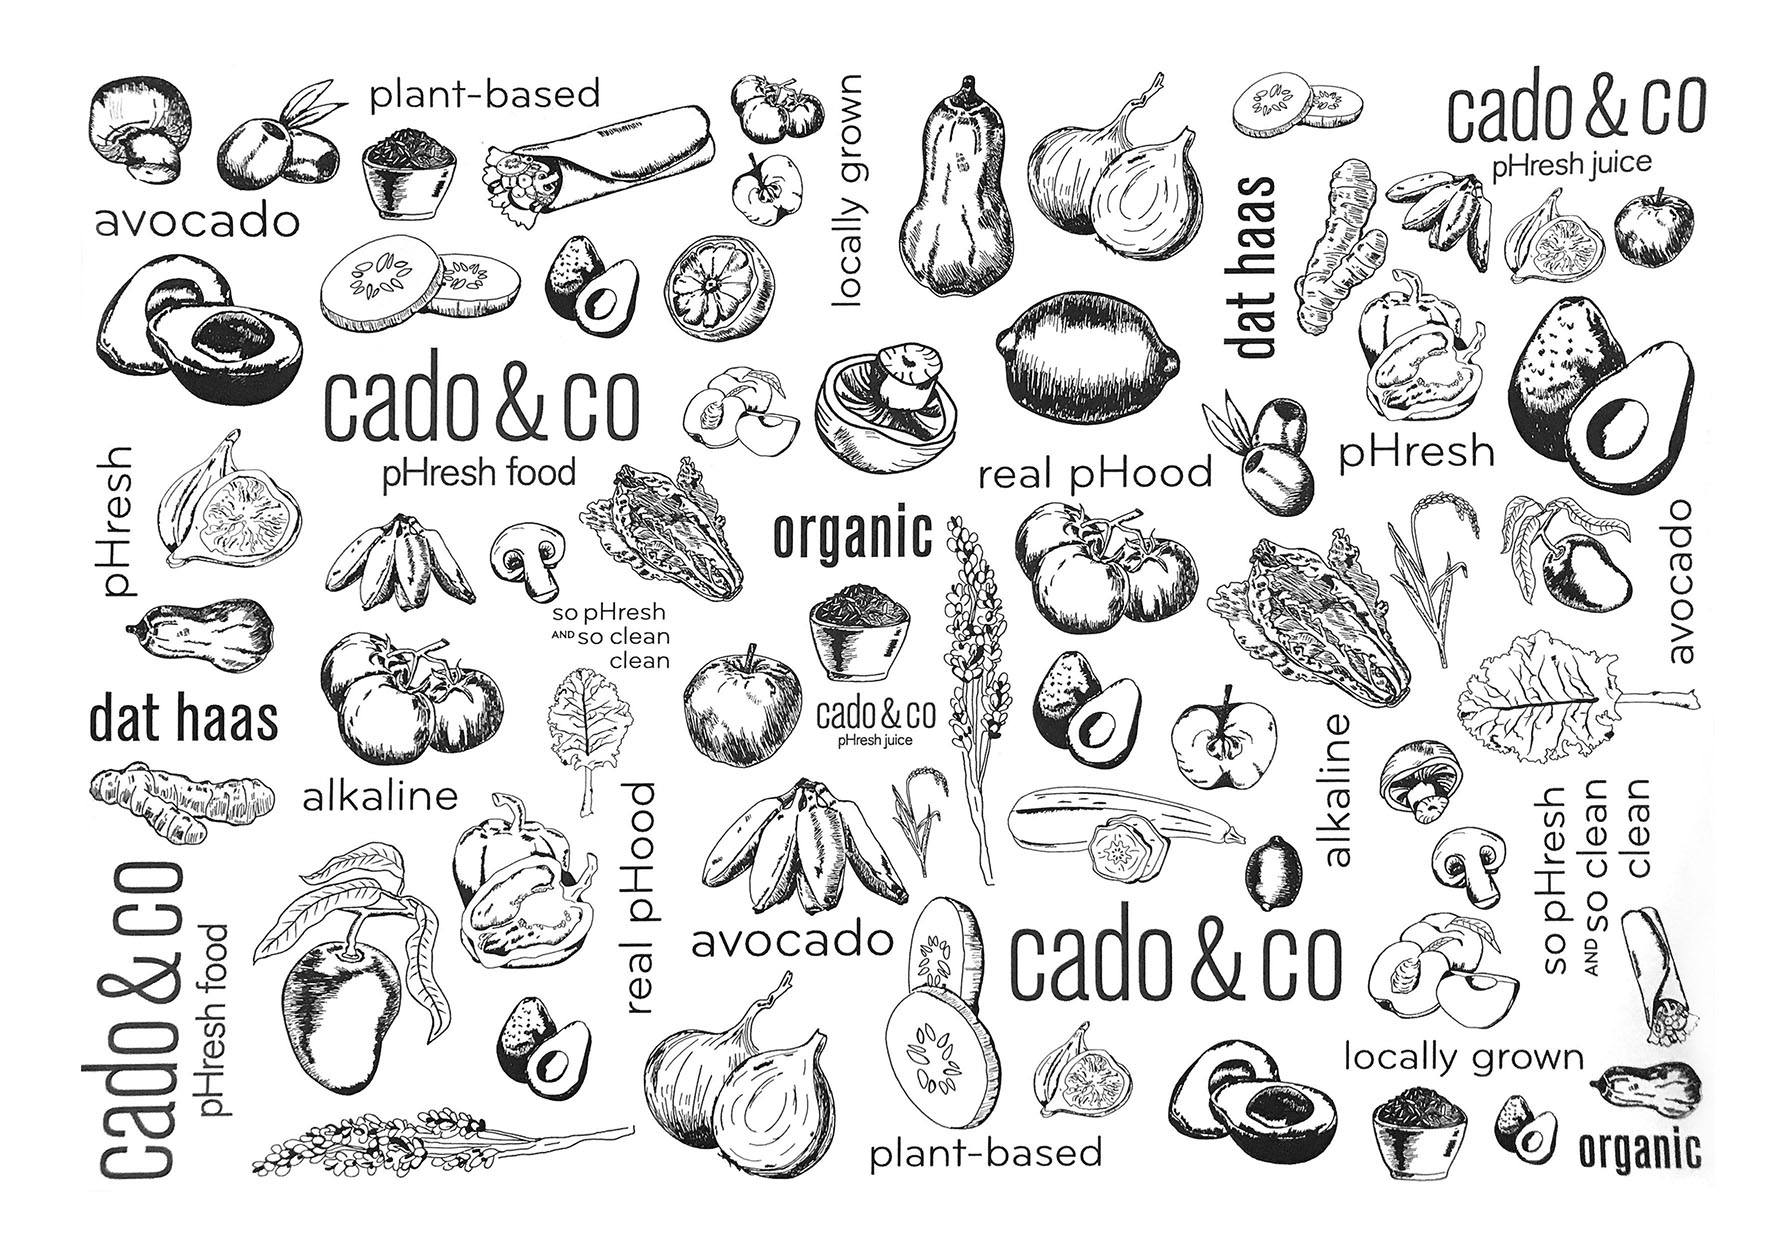 Illustrations were combined with Cado & Co's unique brand voice to create the vellum lining for the serving trays.